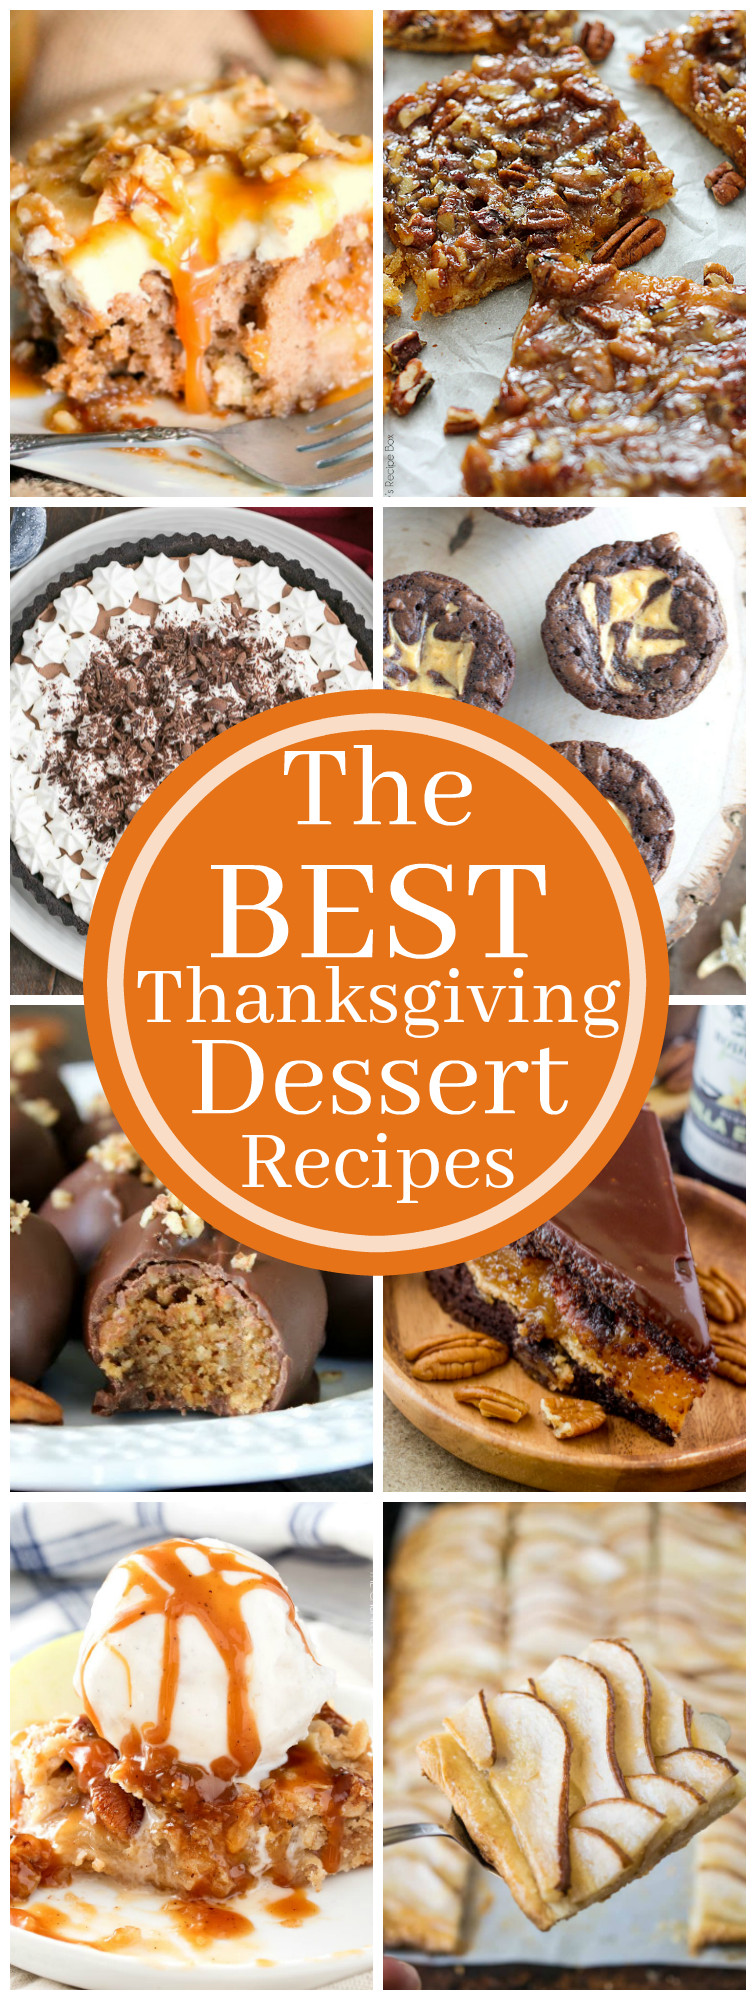 Popular Thanksgiving Desserts  The Best Thanksgiving Desserts Savory Experiments